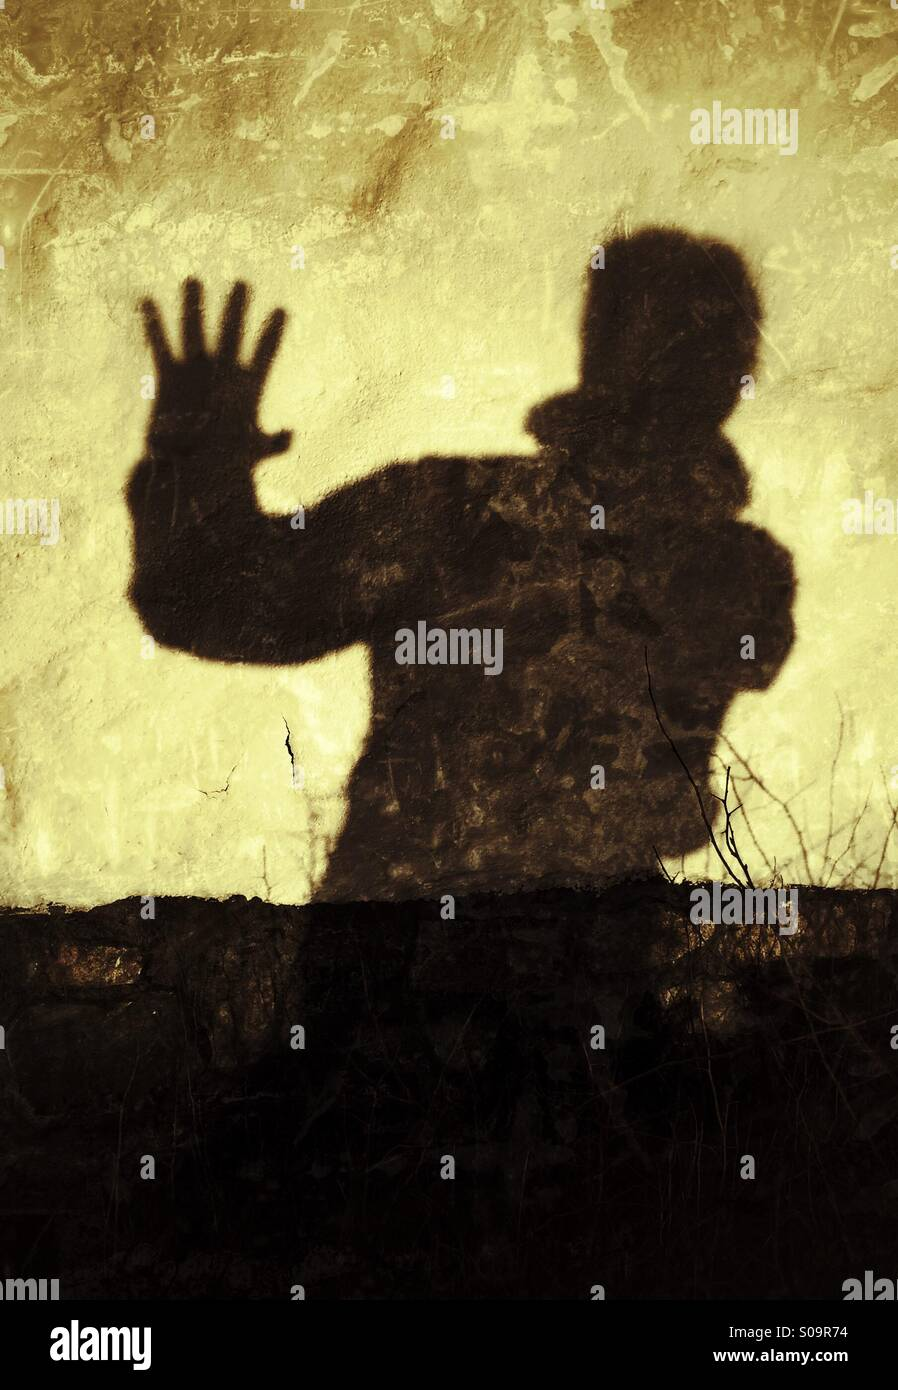 Stop! No more! Man casting a shadow on a wall expressing, Stop!, No more! Stock Photo